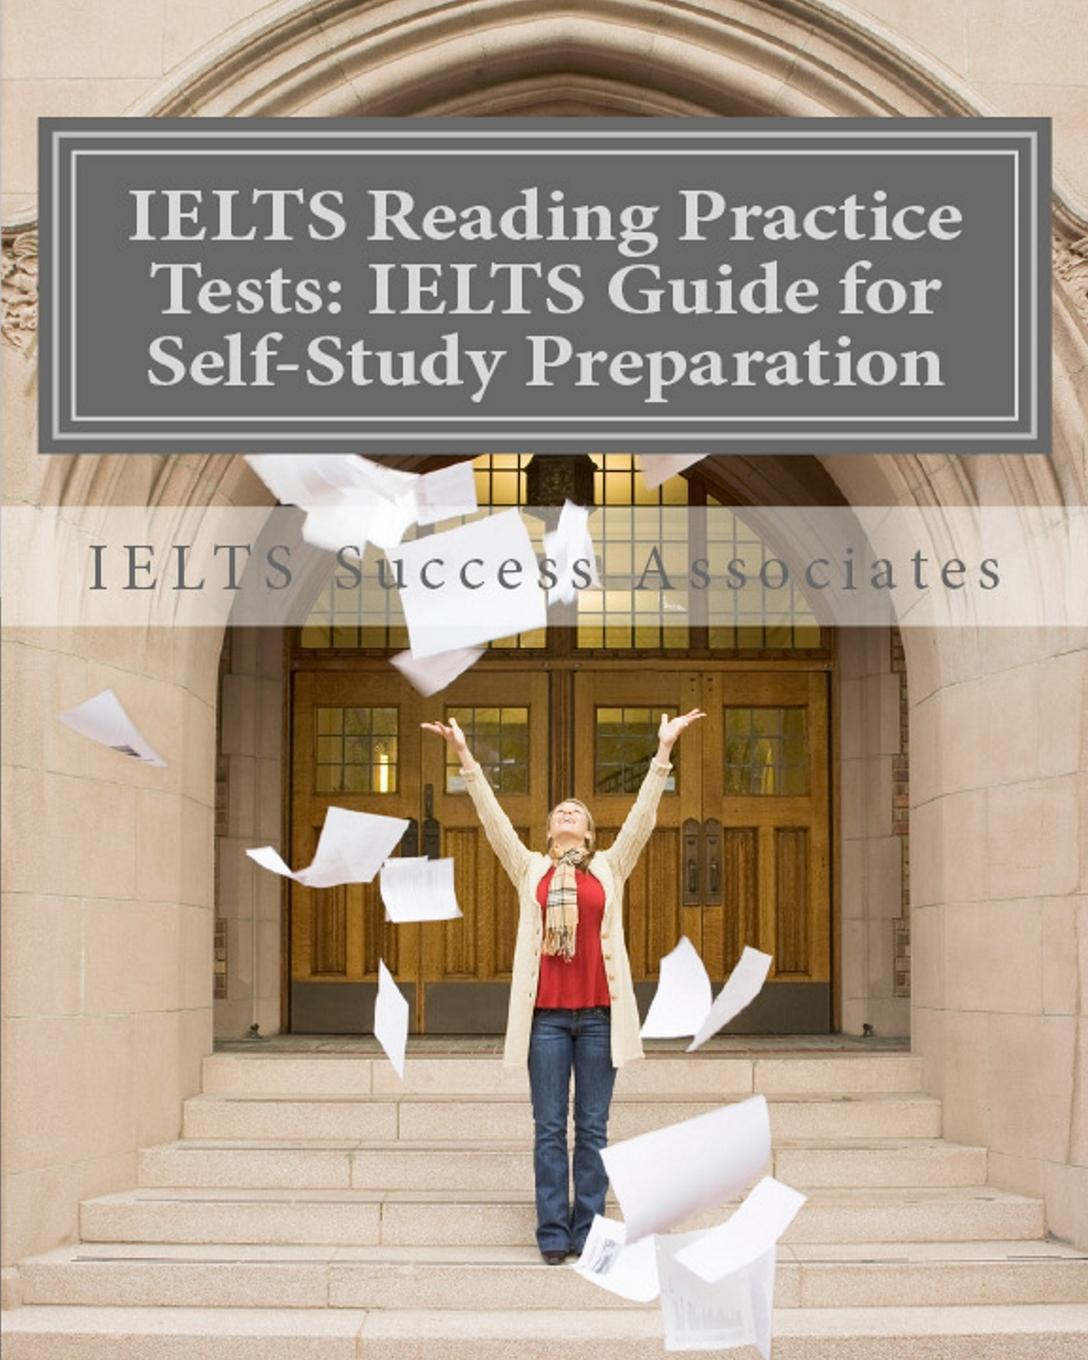 IELTS Success Associates IELTS Reading Practice Tests. IELTS Guide for Self-Study Test Preparation for IELTS for Academic Purposes набор ножей 6 предметов winner wr 7349